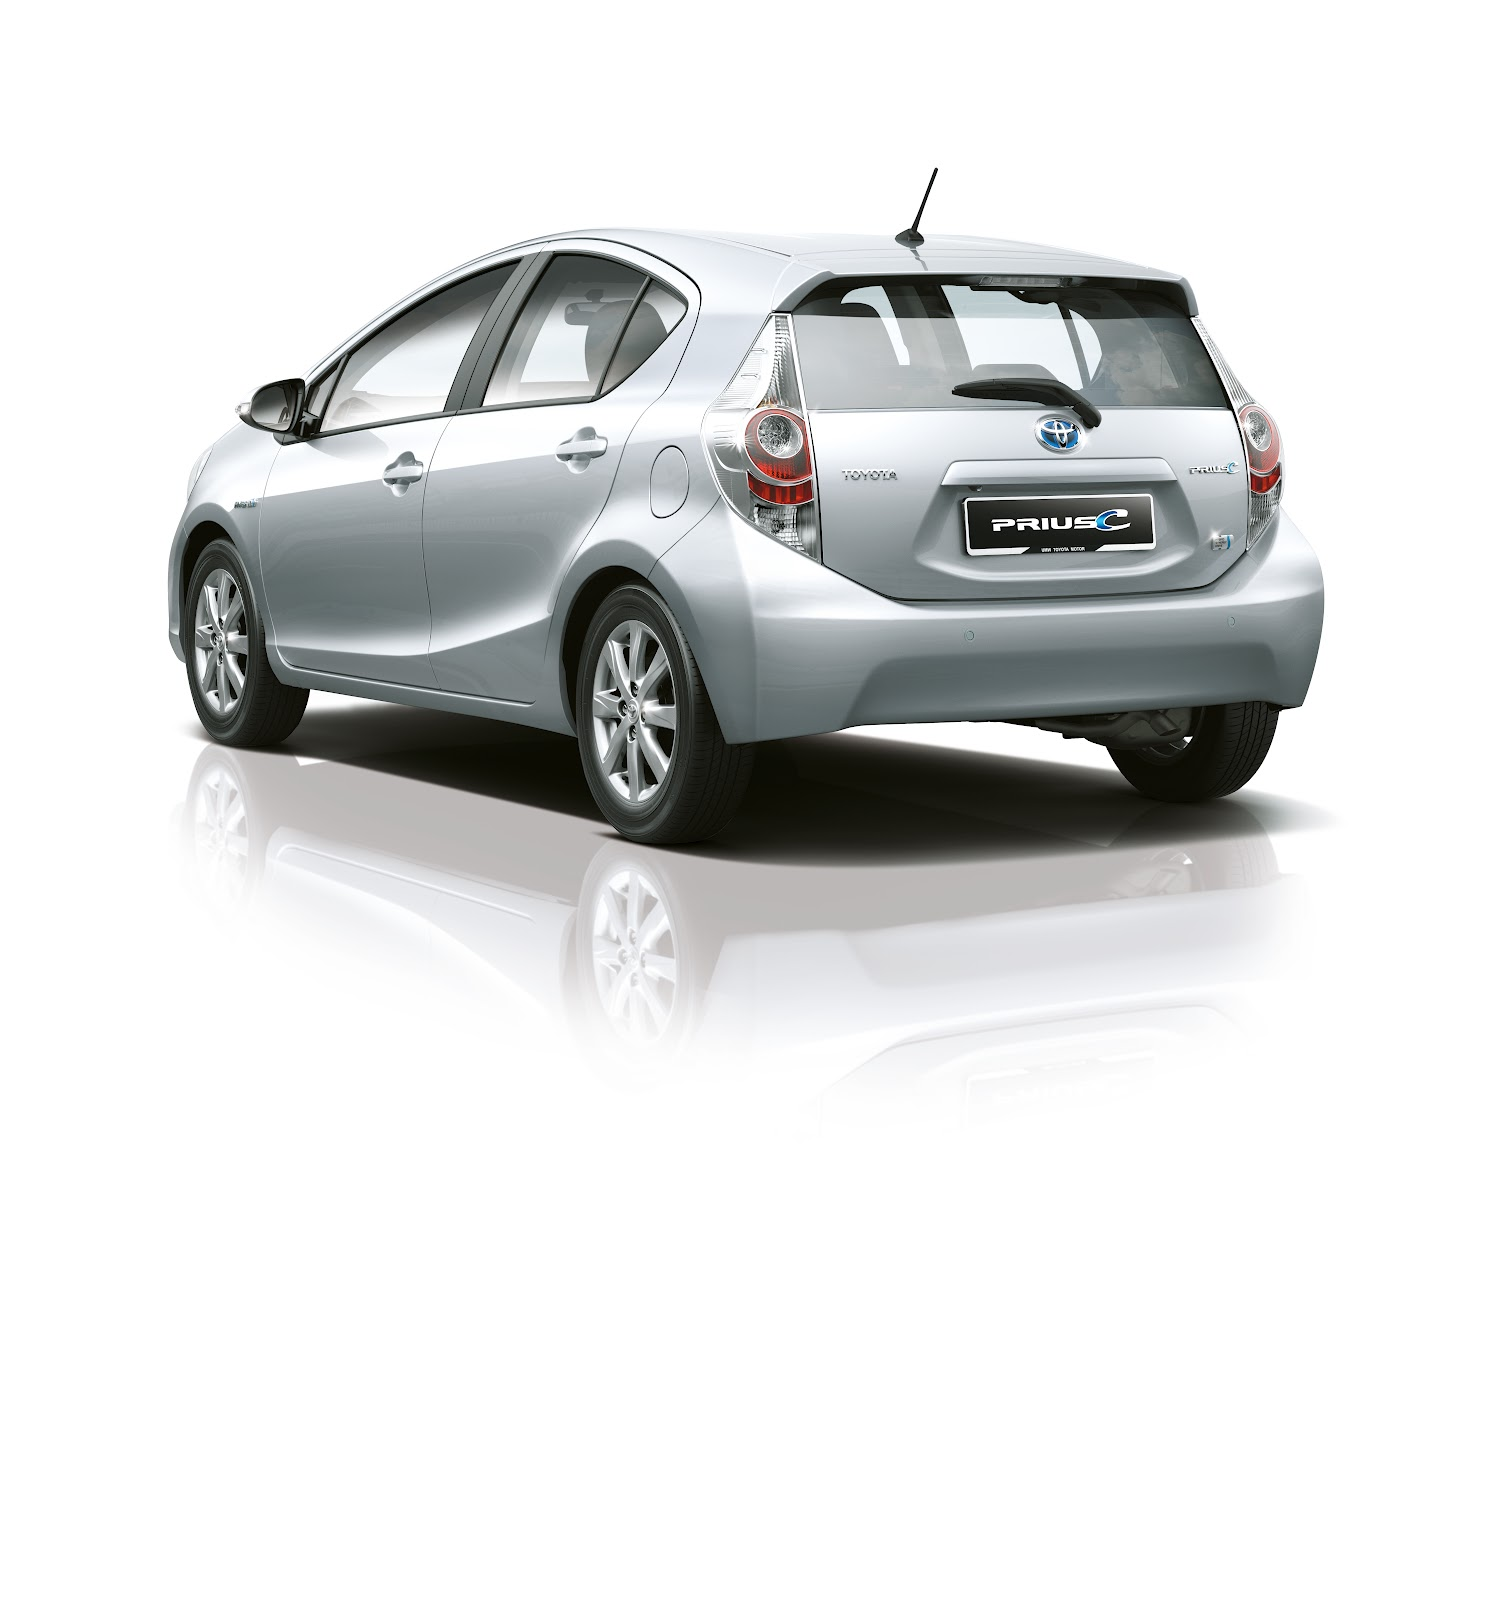 JQ Talks: Toyota Motor Launched New Hybrids, New Prius And